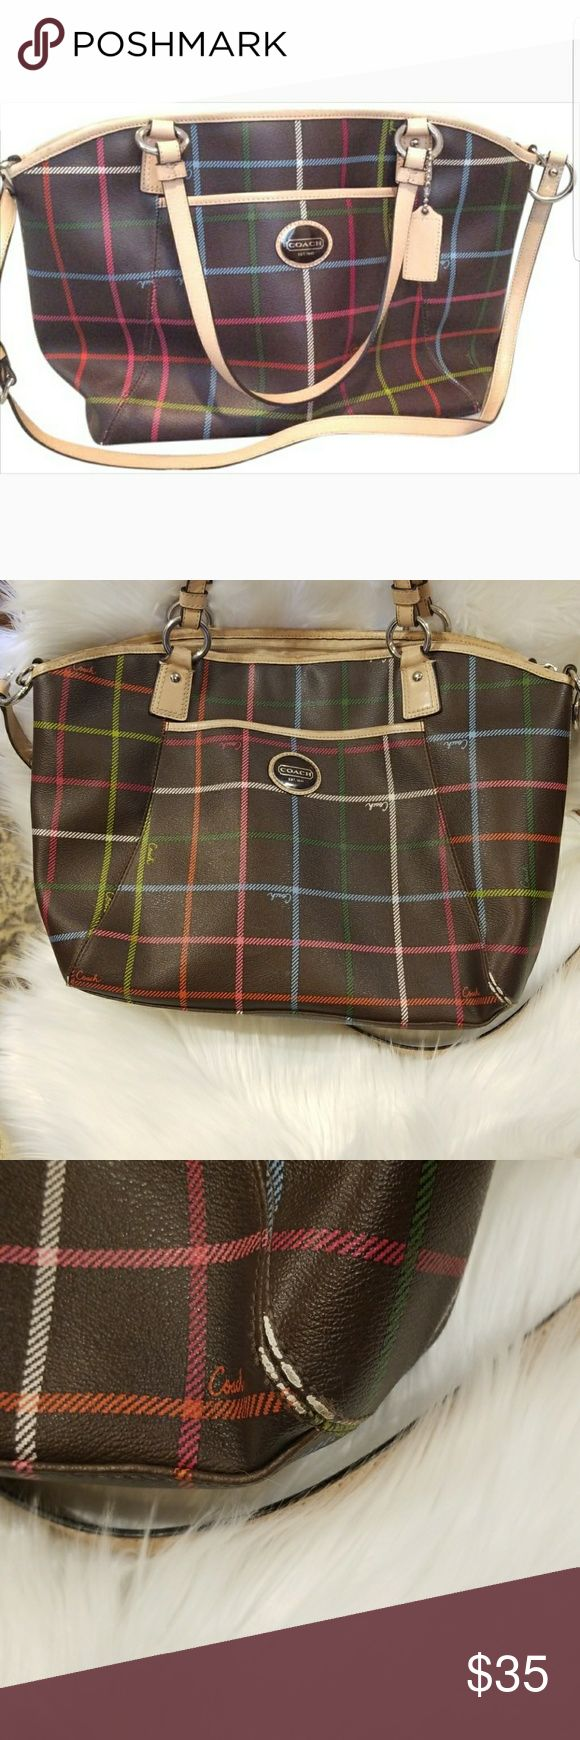 Coach Java Brown Canvas & Leather Tote This bag is in good used condition. I ran out of pictures otherwise I would have posted a picture of every corner at the bottom of the bag which definitely shows some wear.   Interior has quite a bit of marks.   Price is reflective of its condition. I believe this bag house a lot of life left in it! Coach Bags Totes